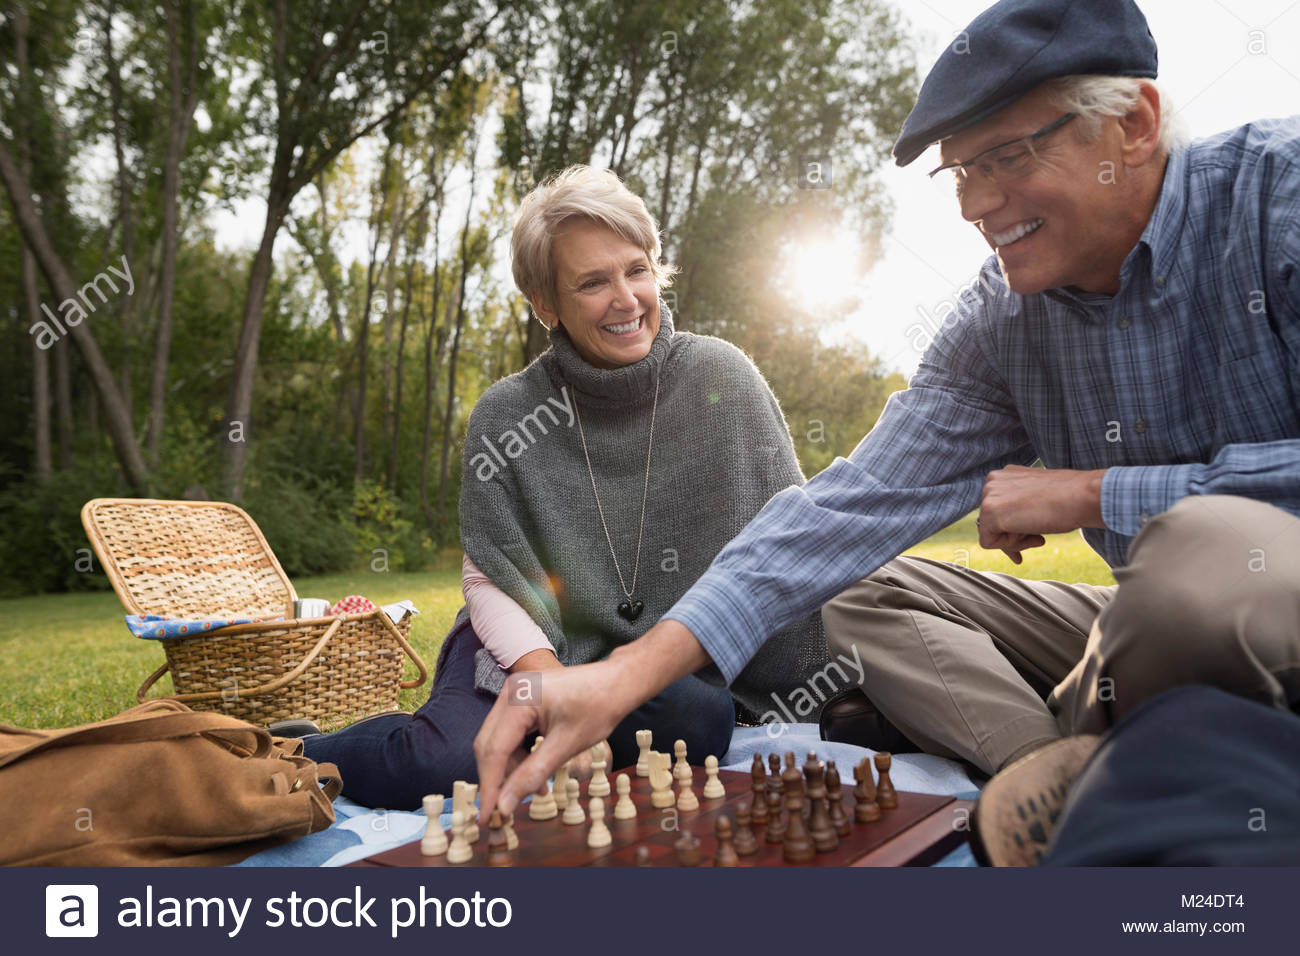 Senior couple playing chess in park - Stock Image